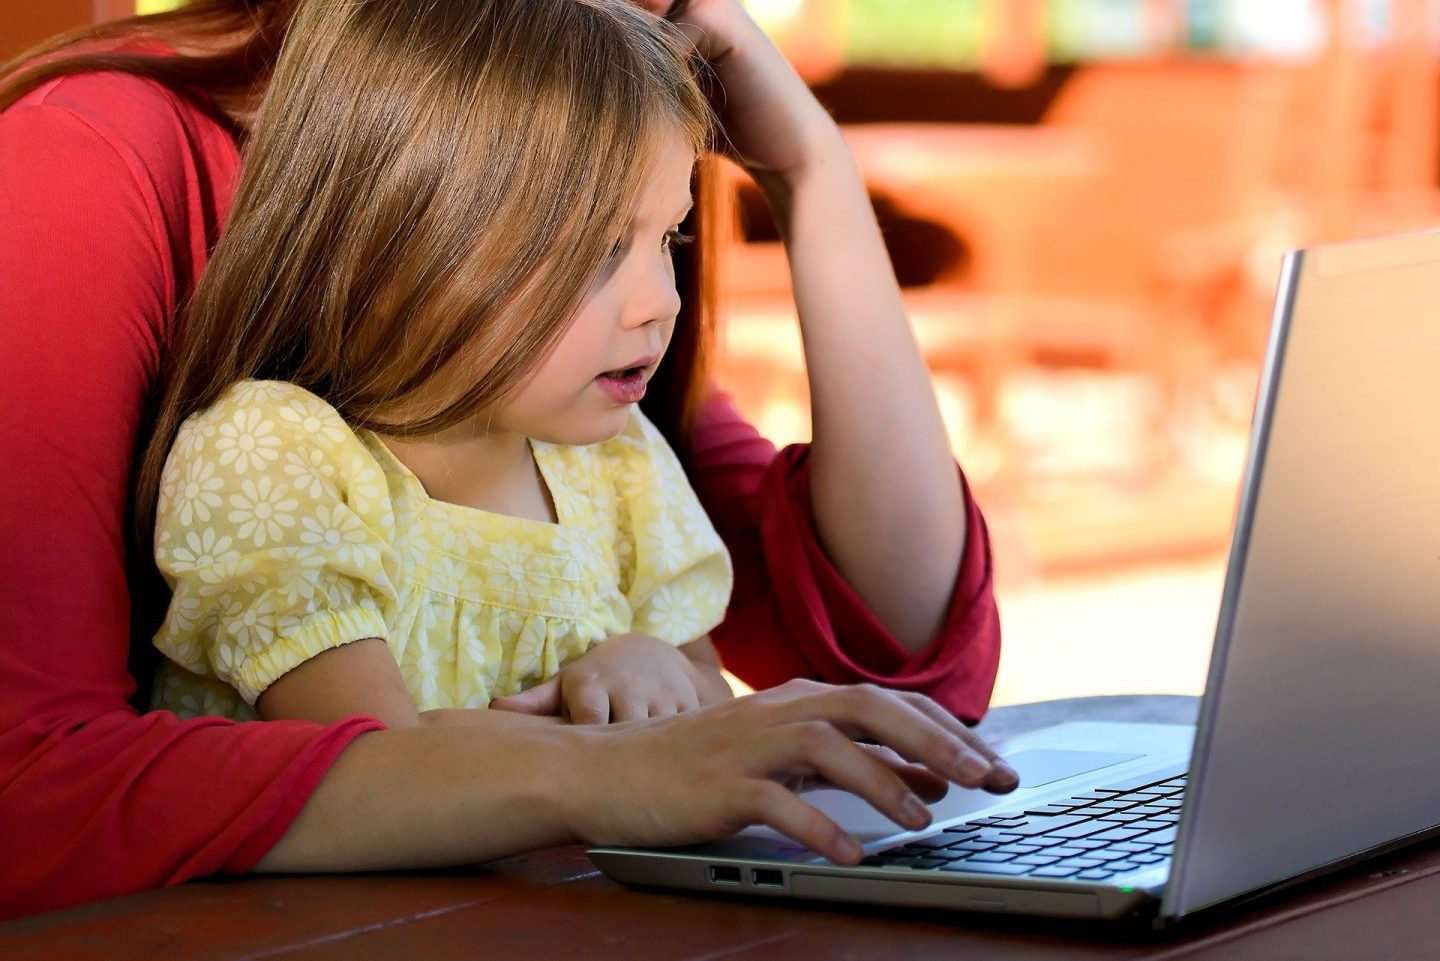 A girl sitting on a woman's knee, looking at a laptop